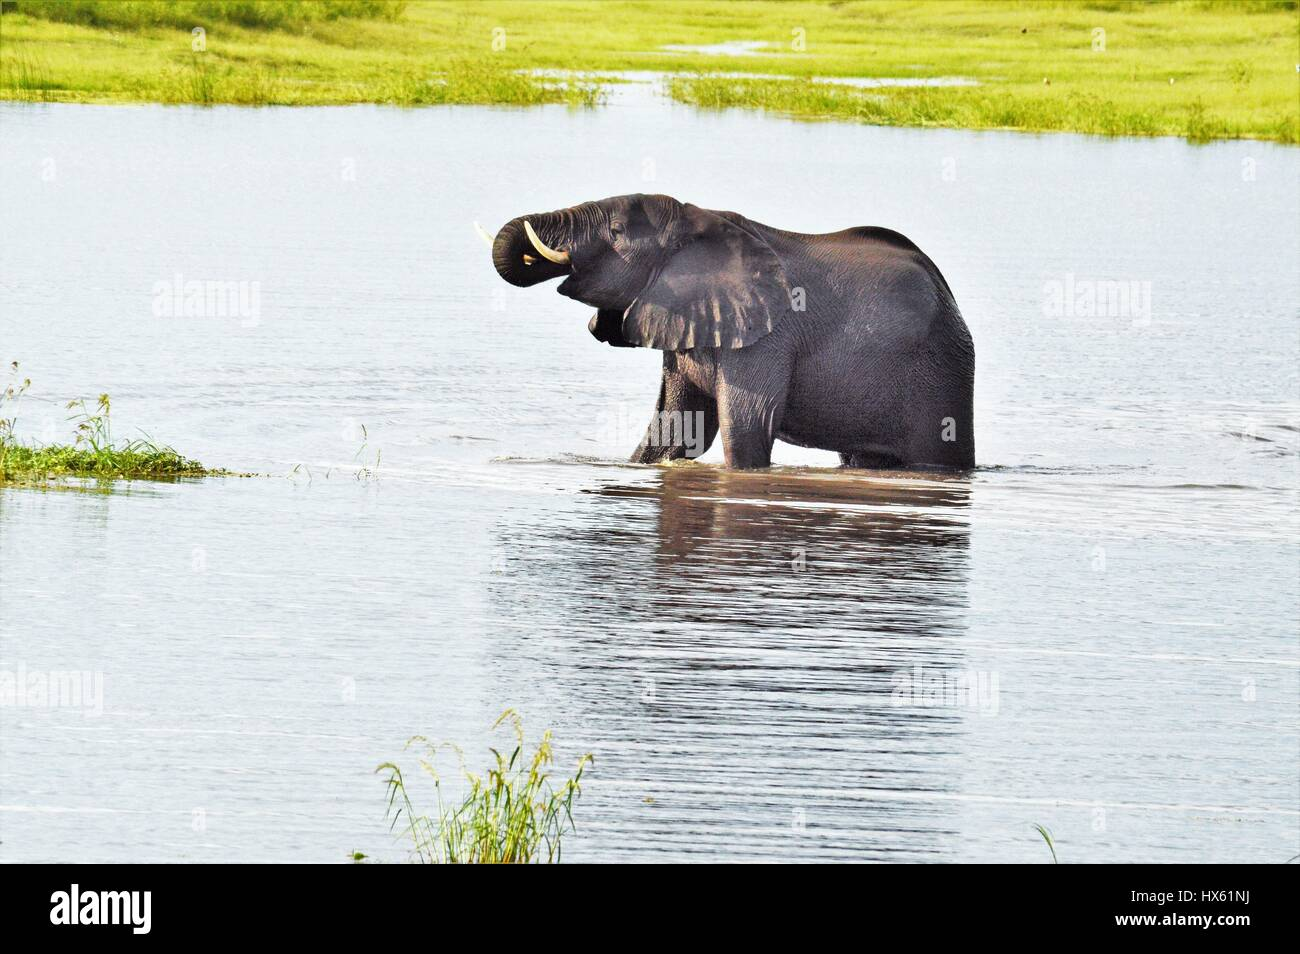 Elephant in Watering hole - Stock Image